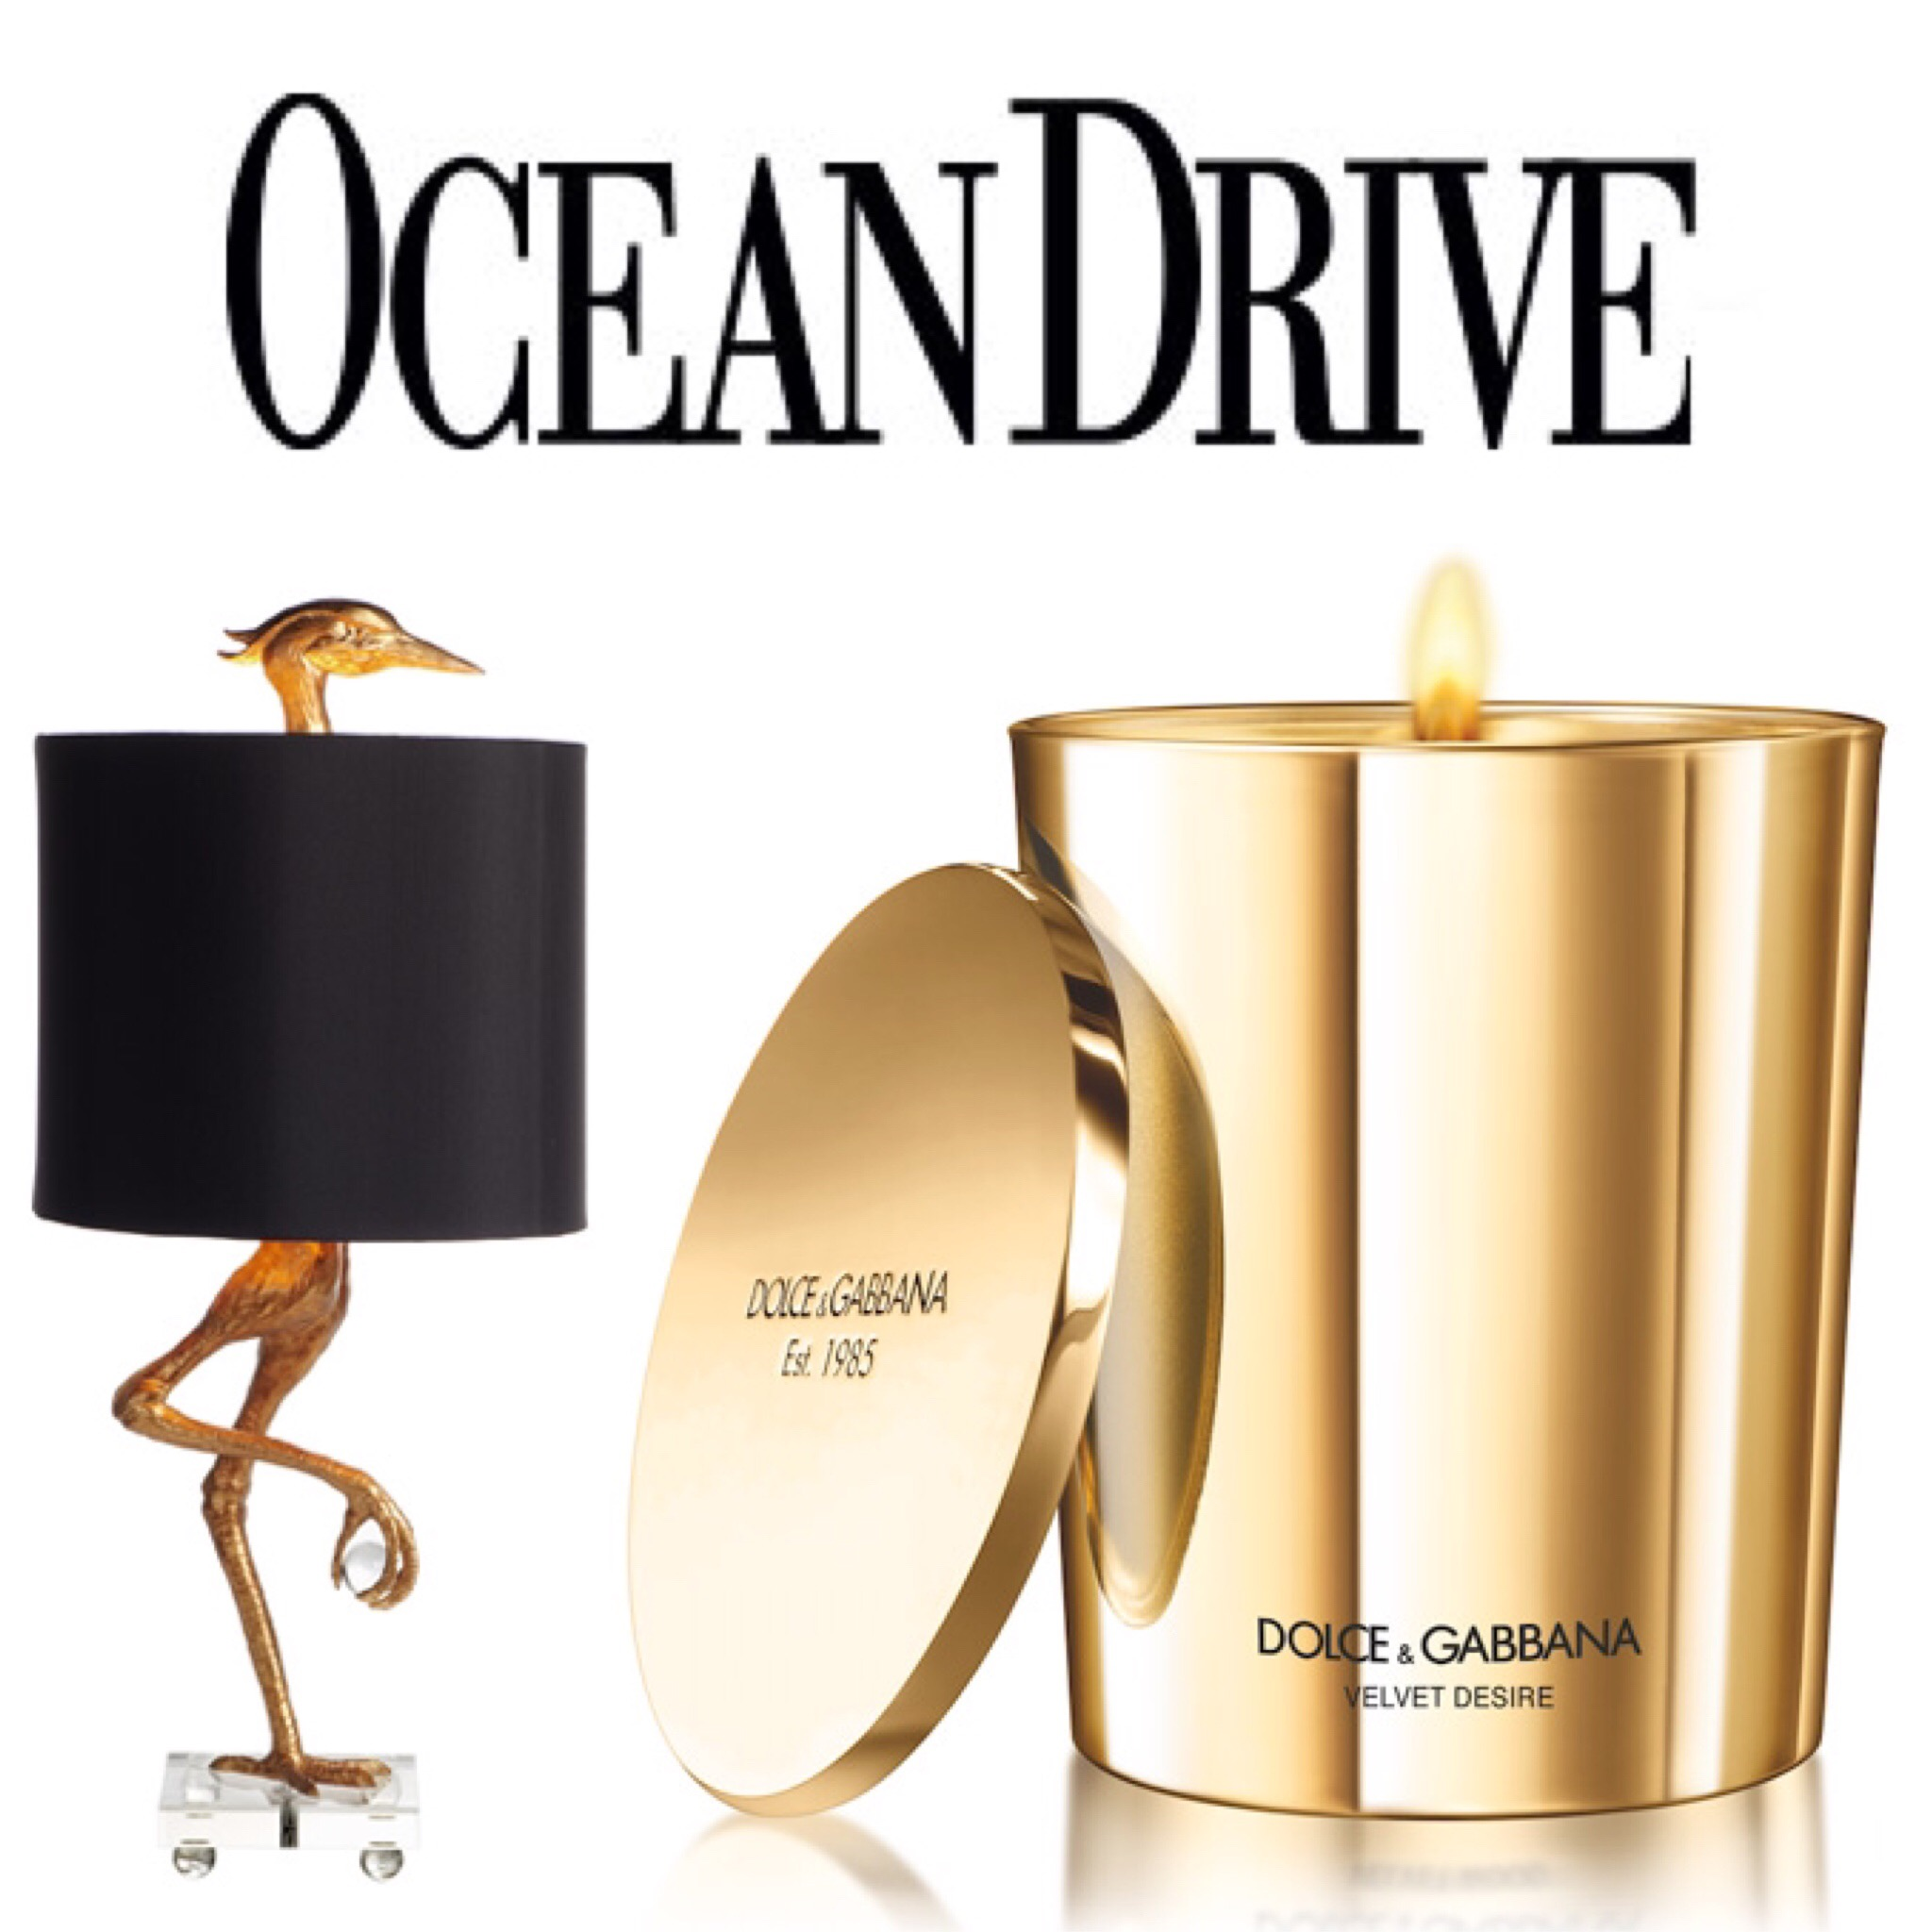 https://oceandrive.com/gold-home-accessories-to-glam-up-your-space